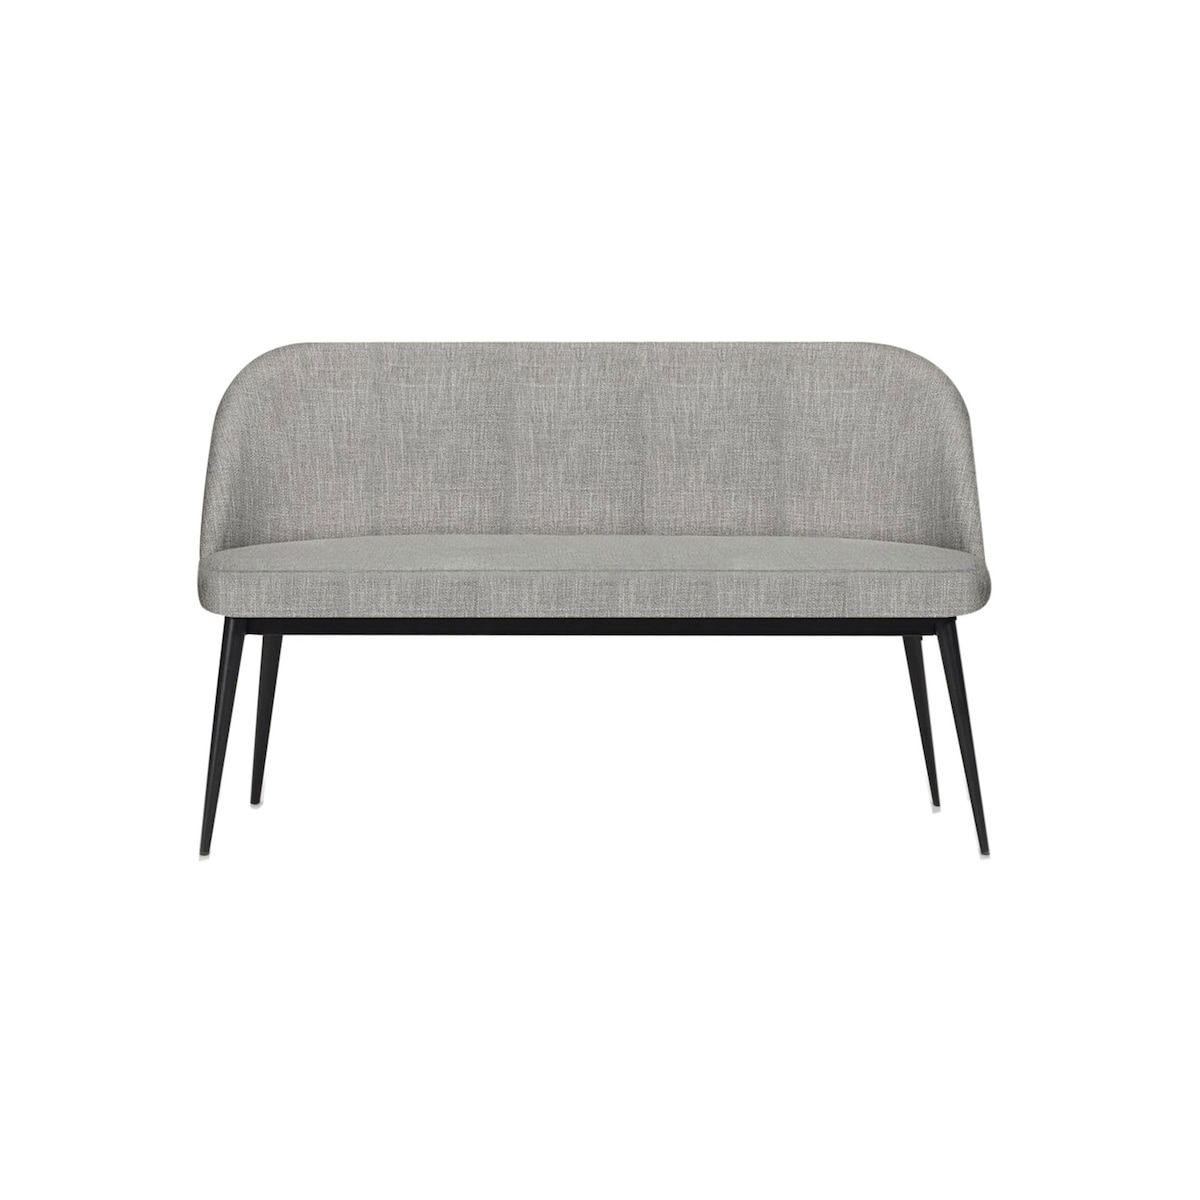 Remarkable Linen Chest Cara Dining Bench And Chair Dining Chair Caraccident5 Cool Chair Designs And Ideas Caraccident5Info